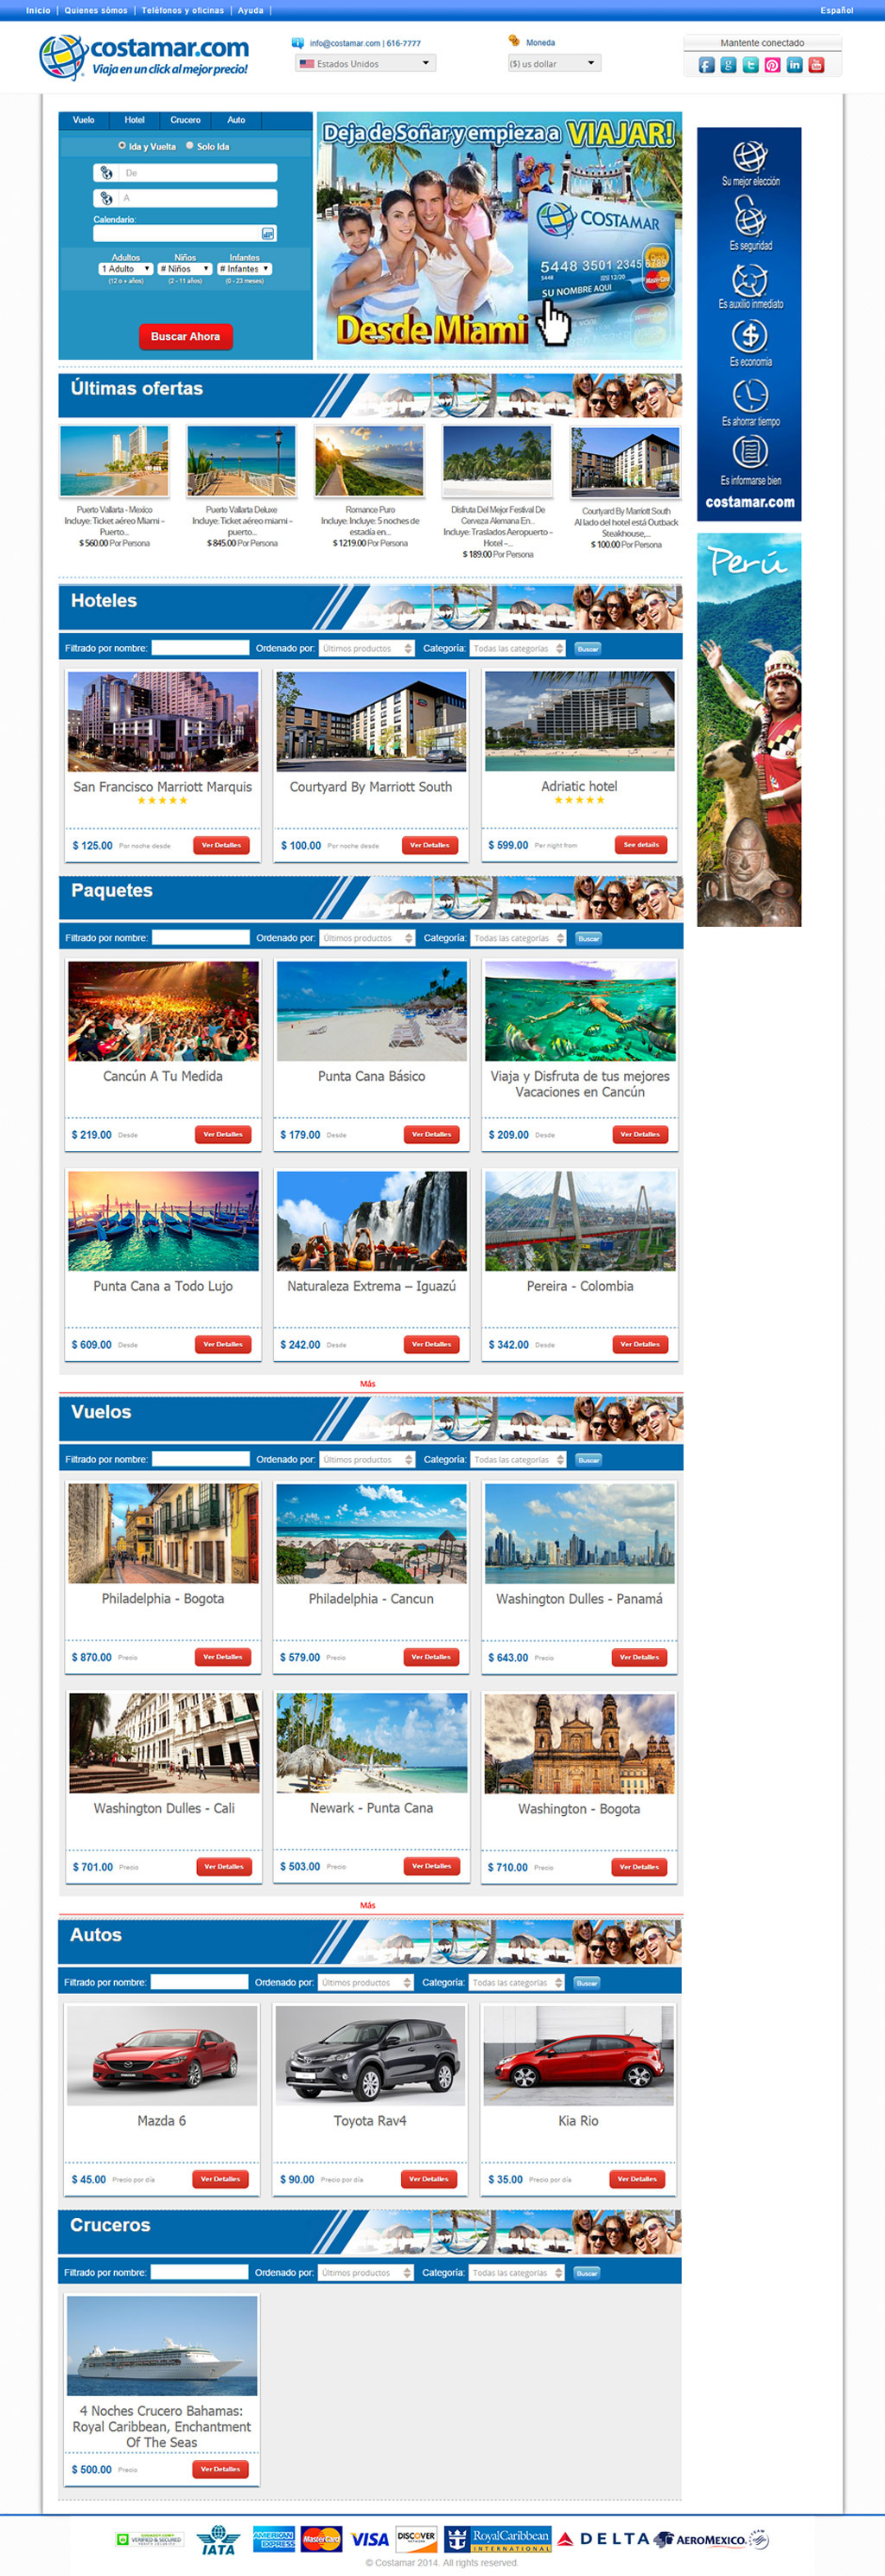 Costamar Travel Homepage Design